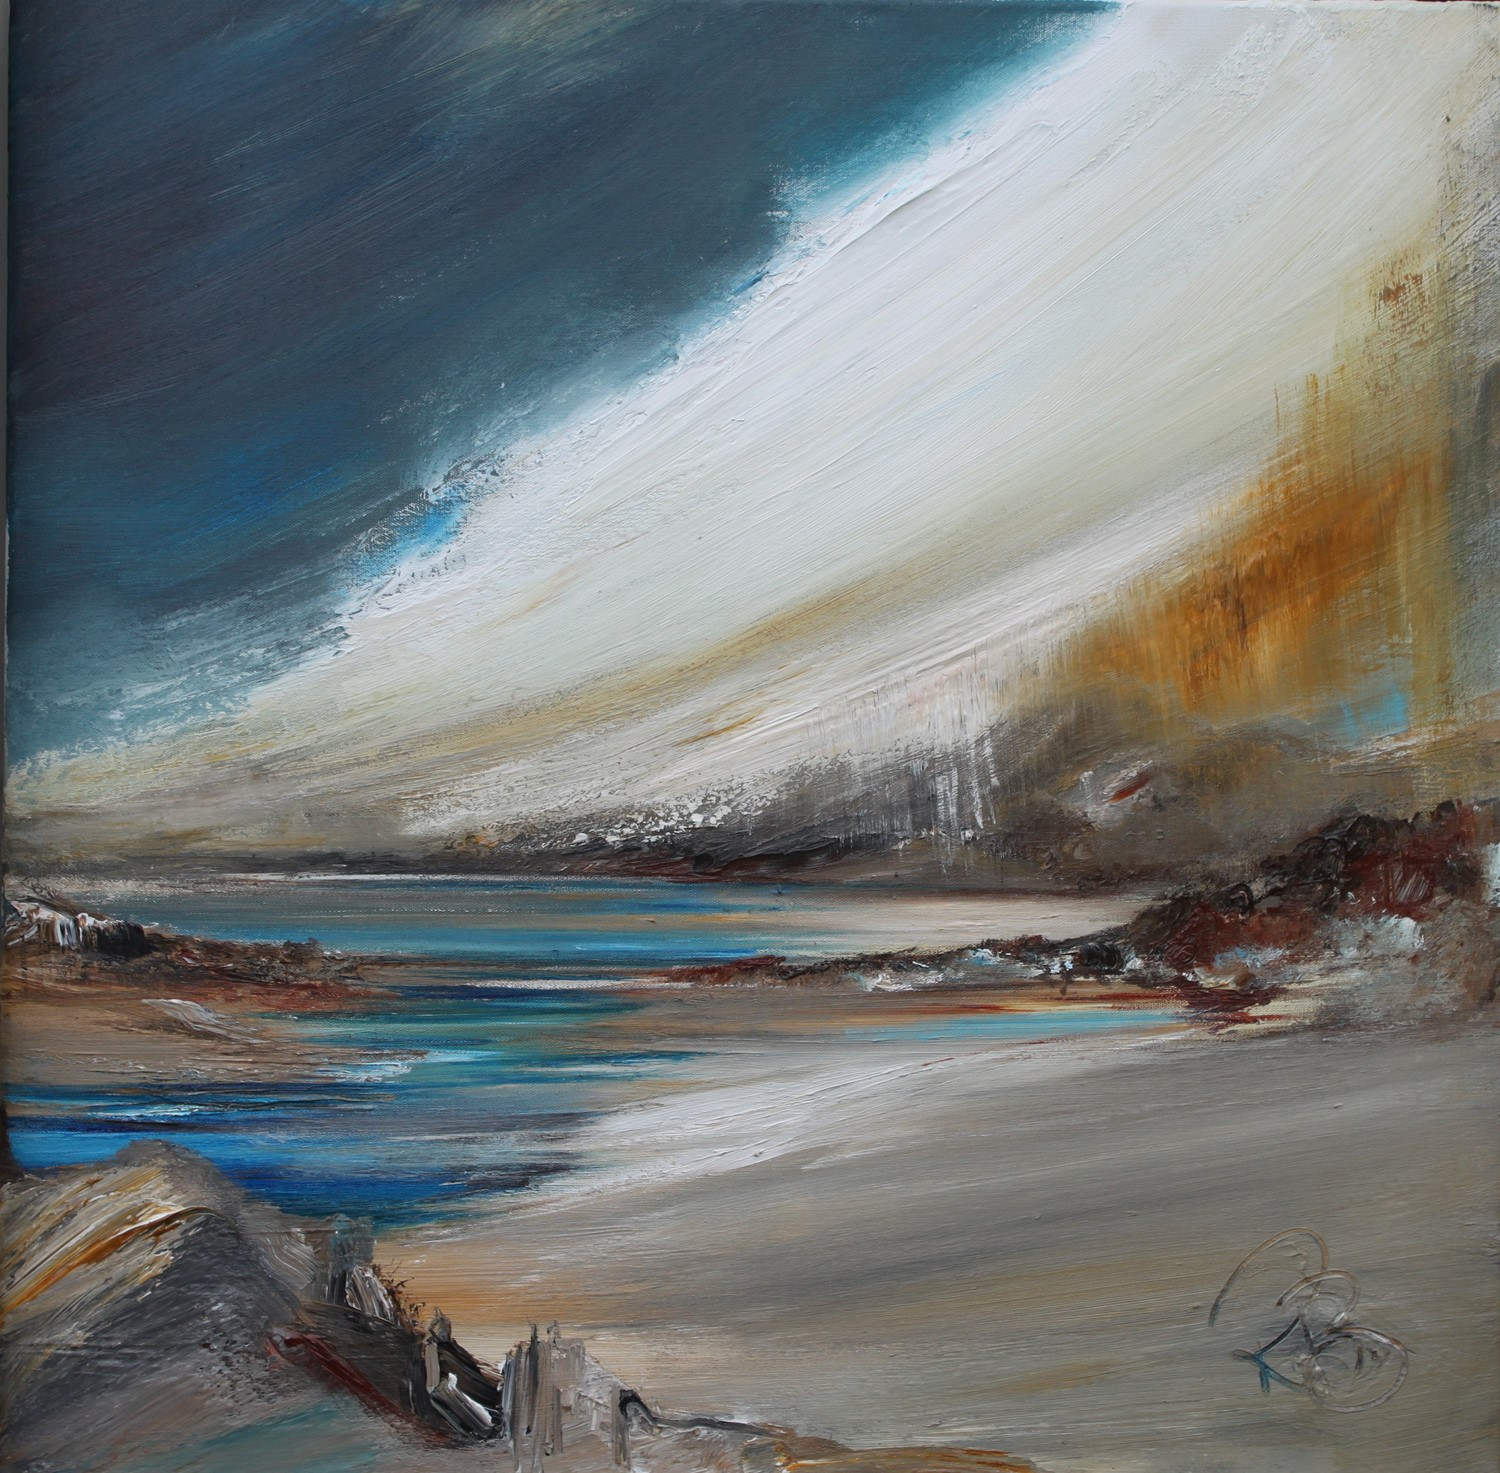 'Sea River' by artist Rosanne Barr